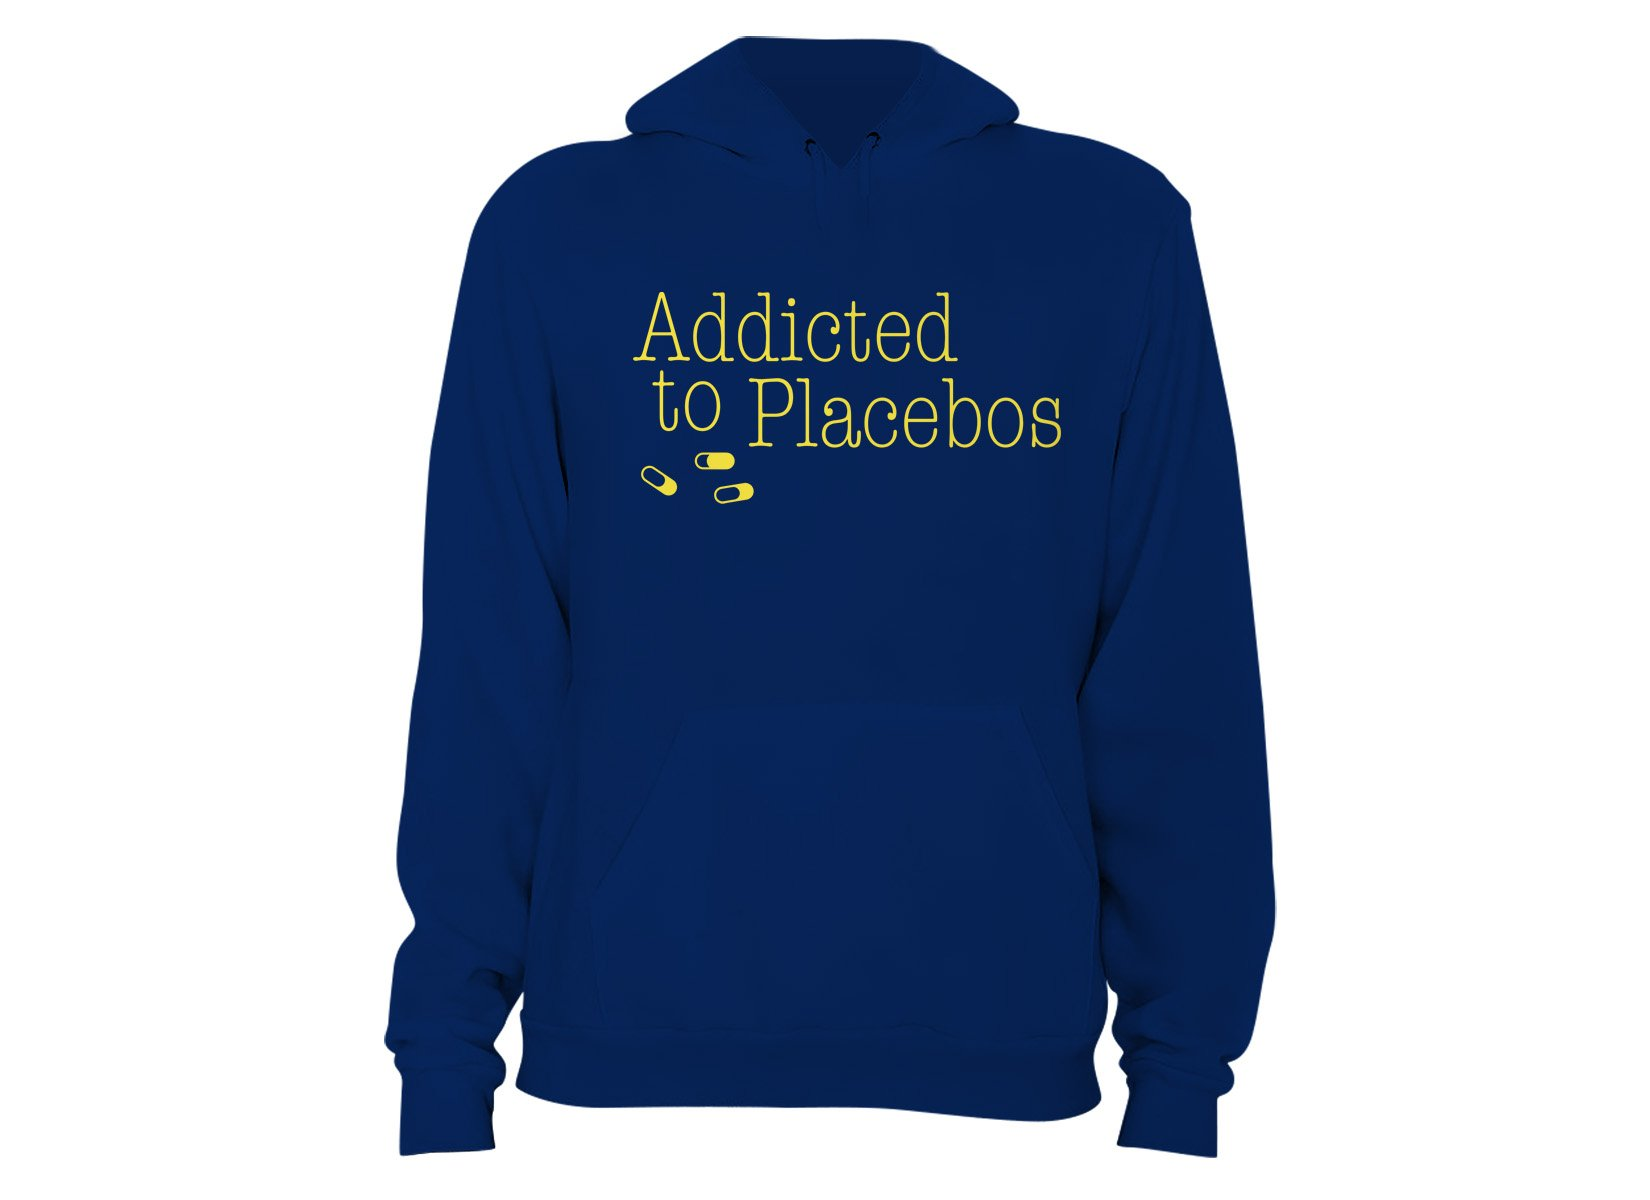 Addicted To Placebos on Hoodie